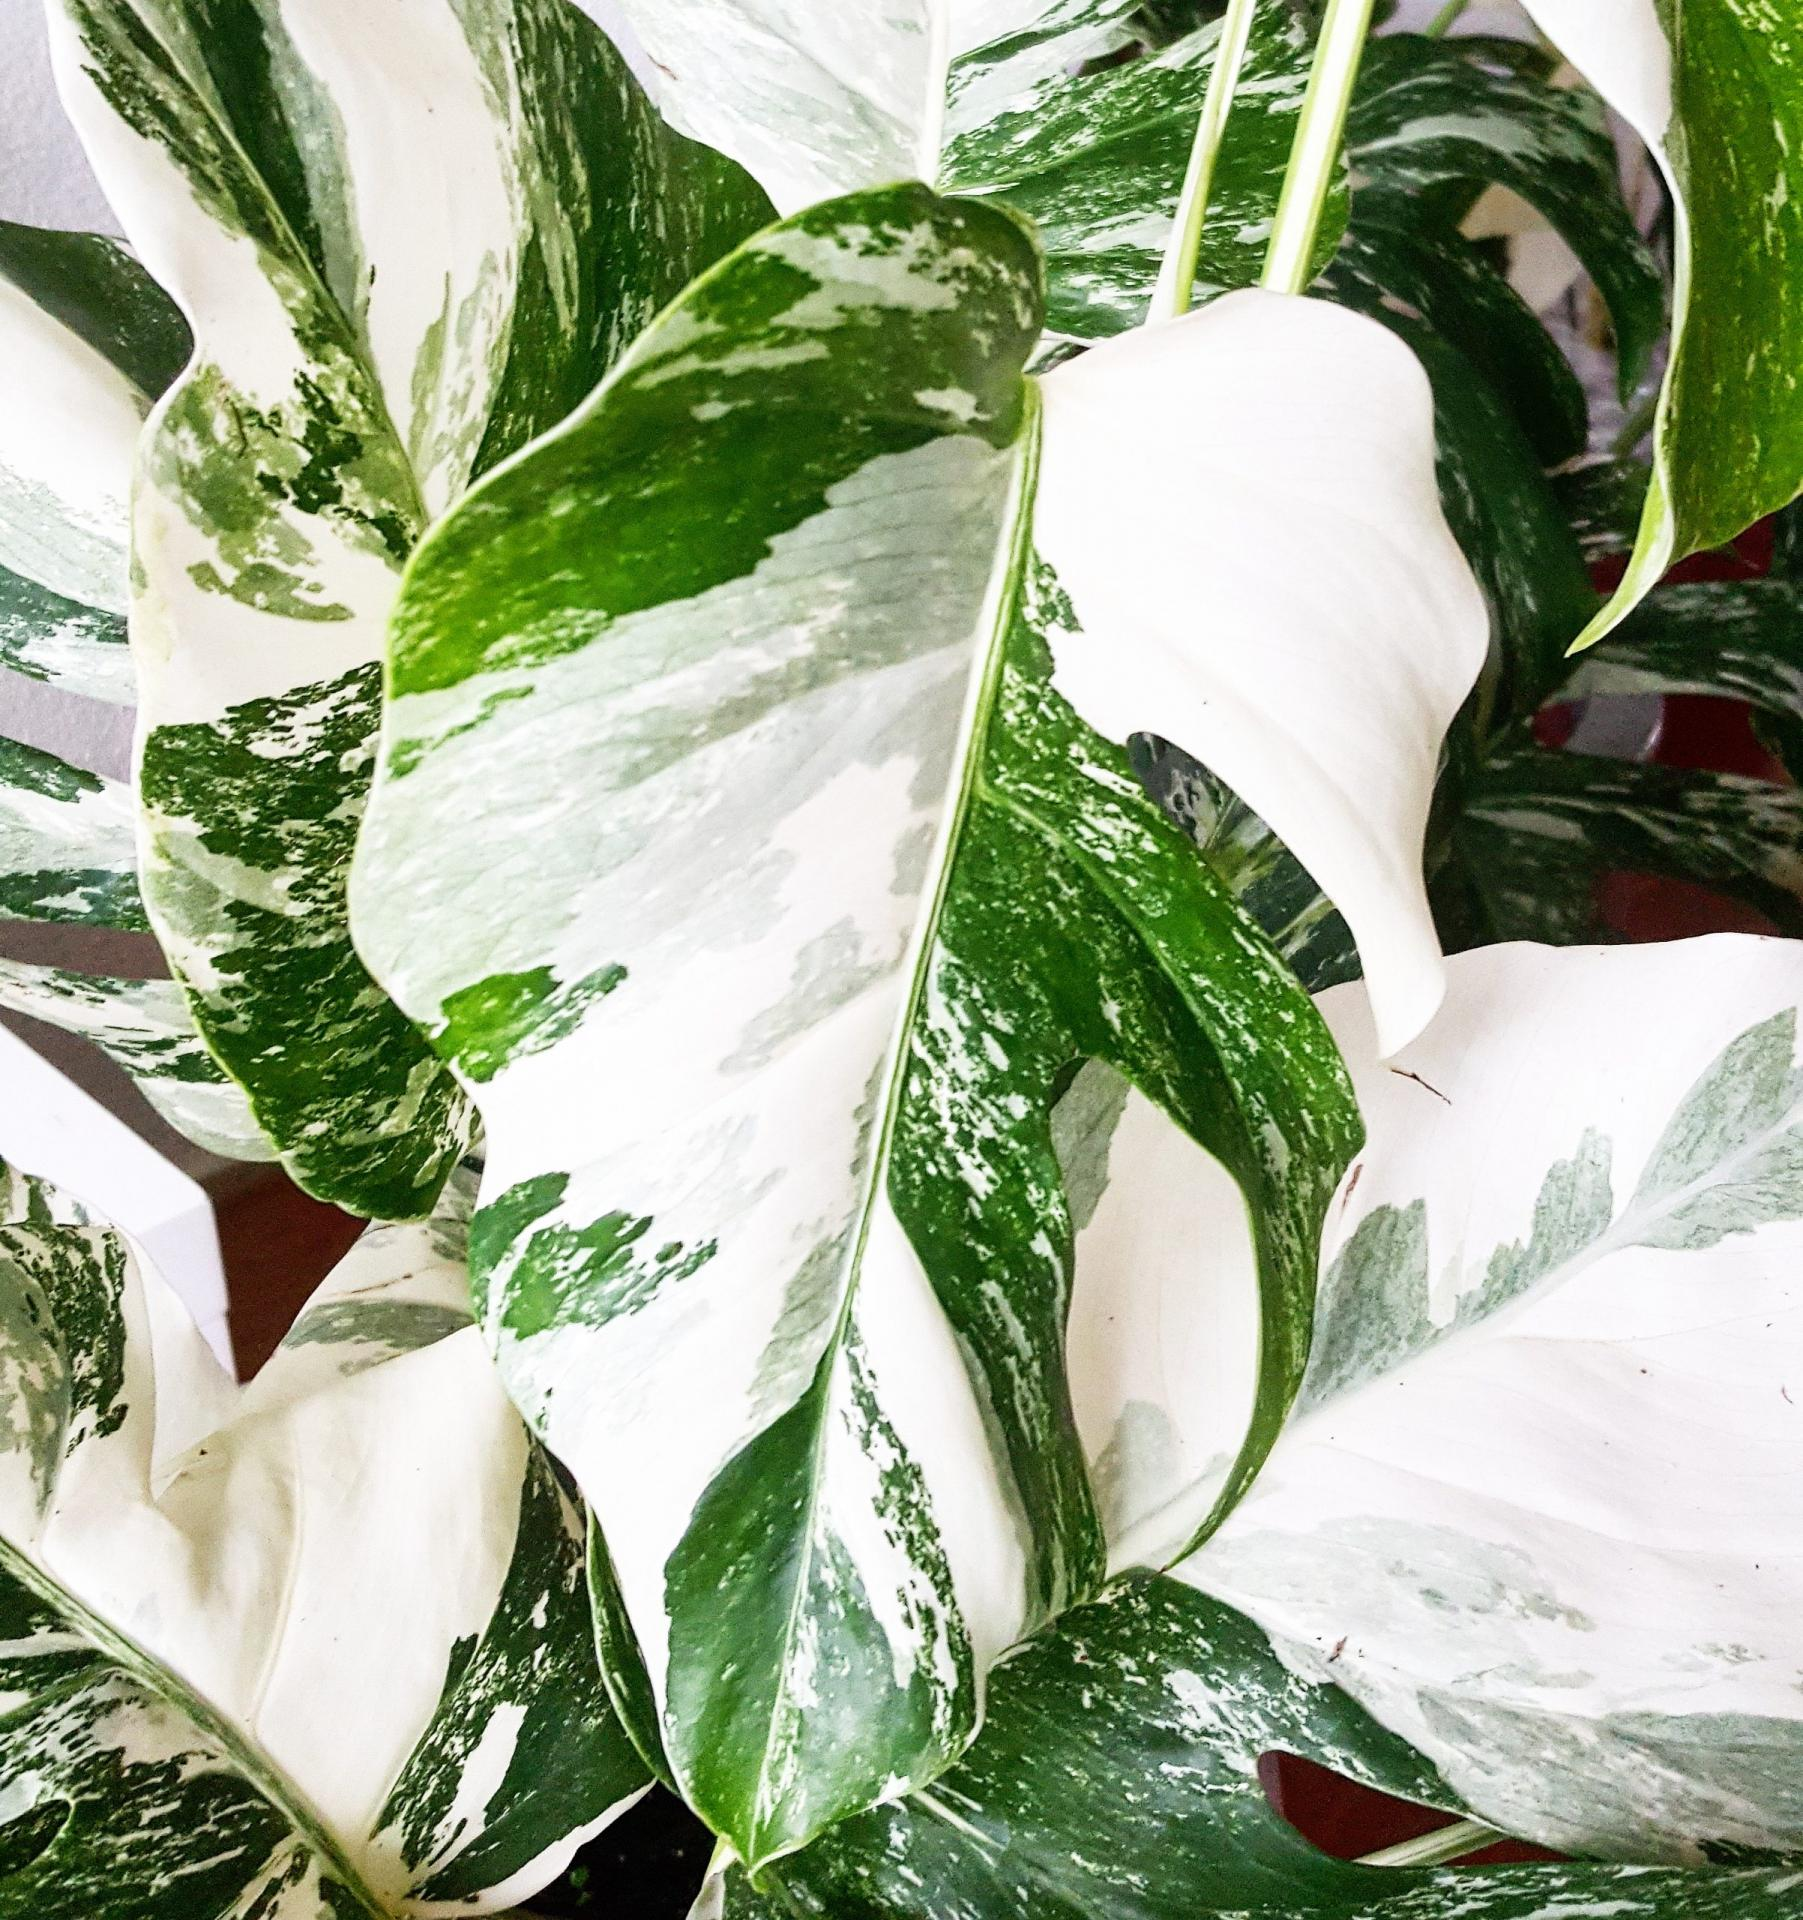 Monstera variegata variegated panache monstera mania philodendron plante rare blanche full white exotique paris france pays bas belgique 108 scaled